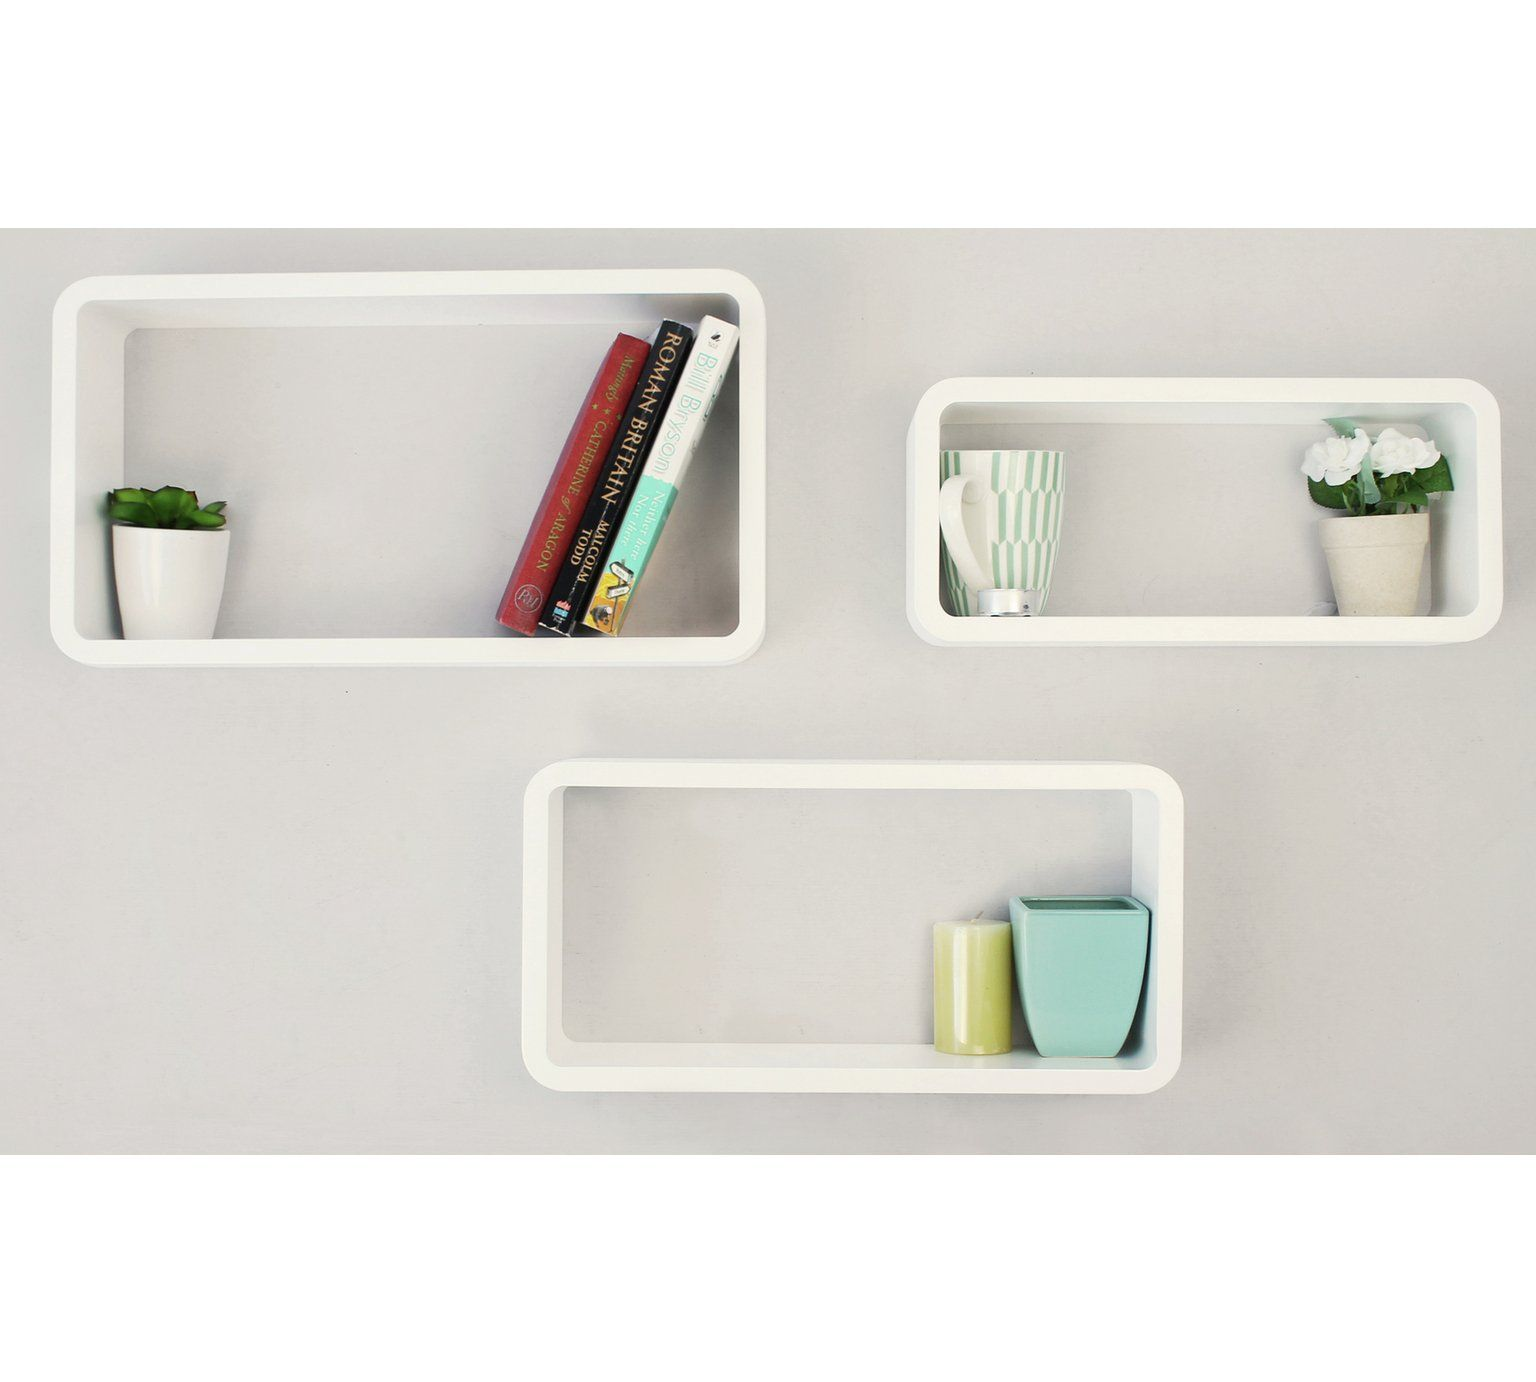 home set cubes white argos visit black floating shelves for wall mounted and living room furniture entryway shelf diy bracket ideas command shower hooks stainless steel kitchen